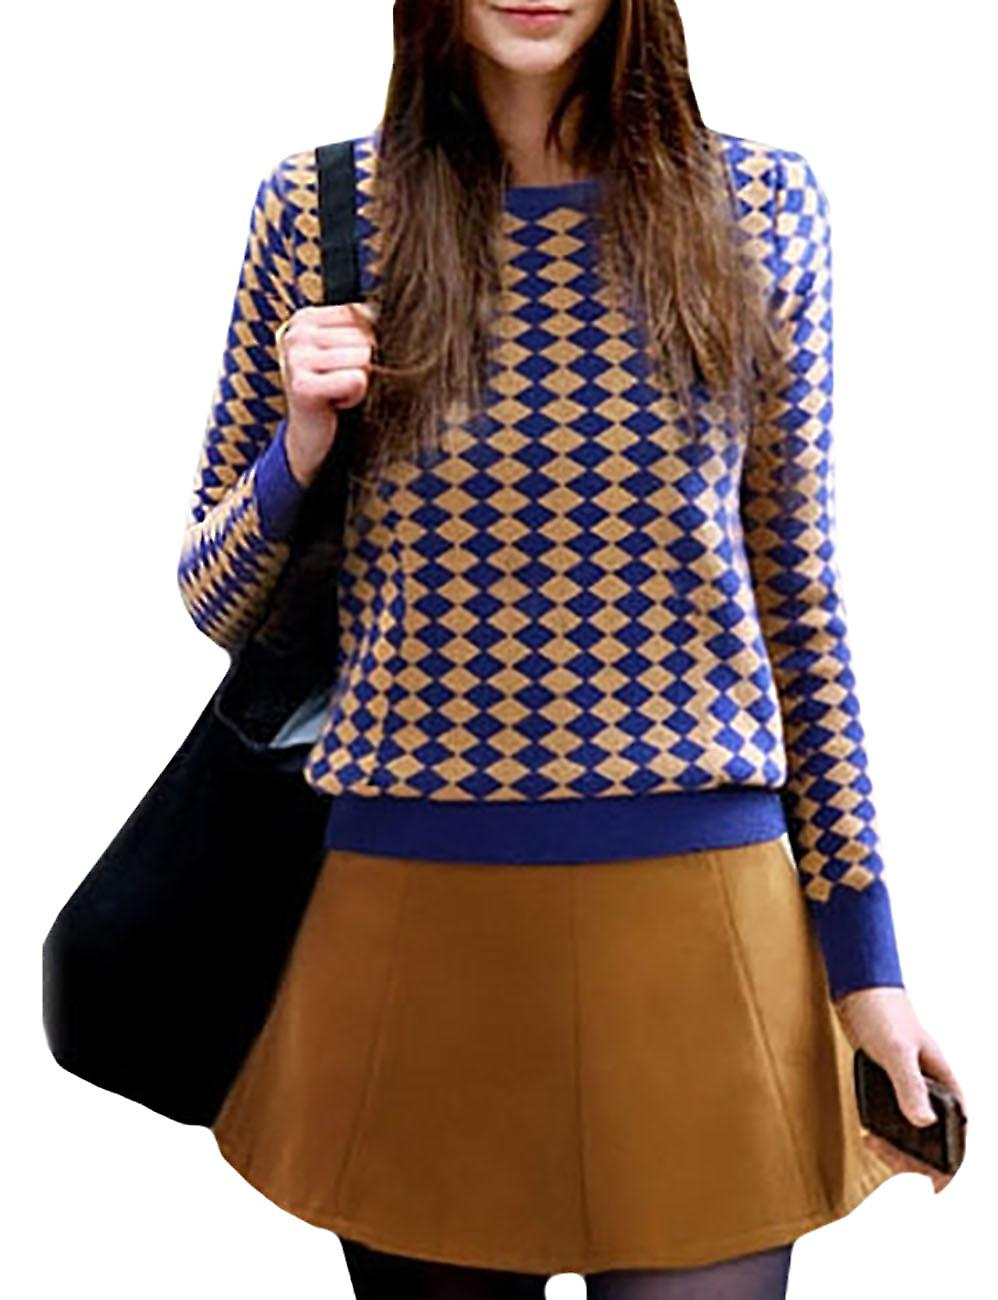 Waooh - pull together geometric pattern skirt Knowa